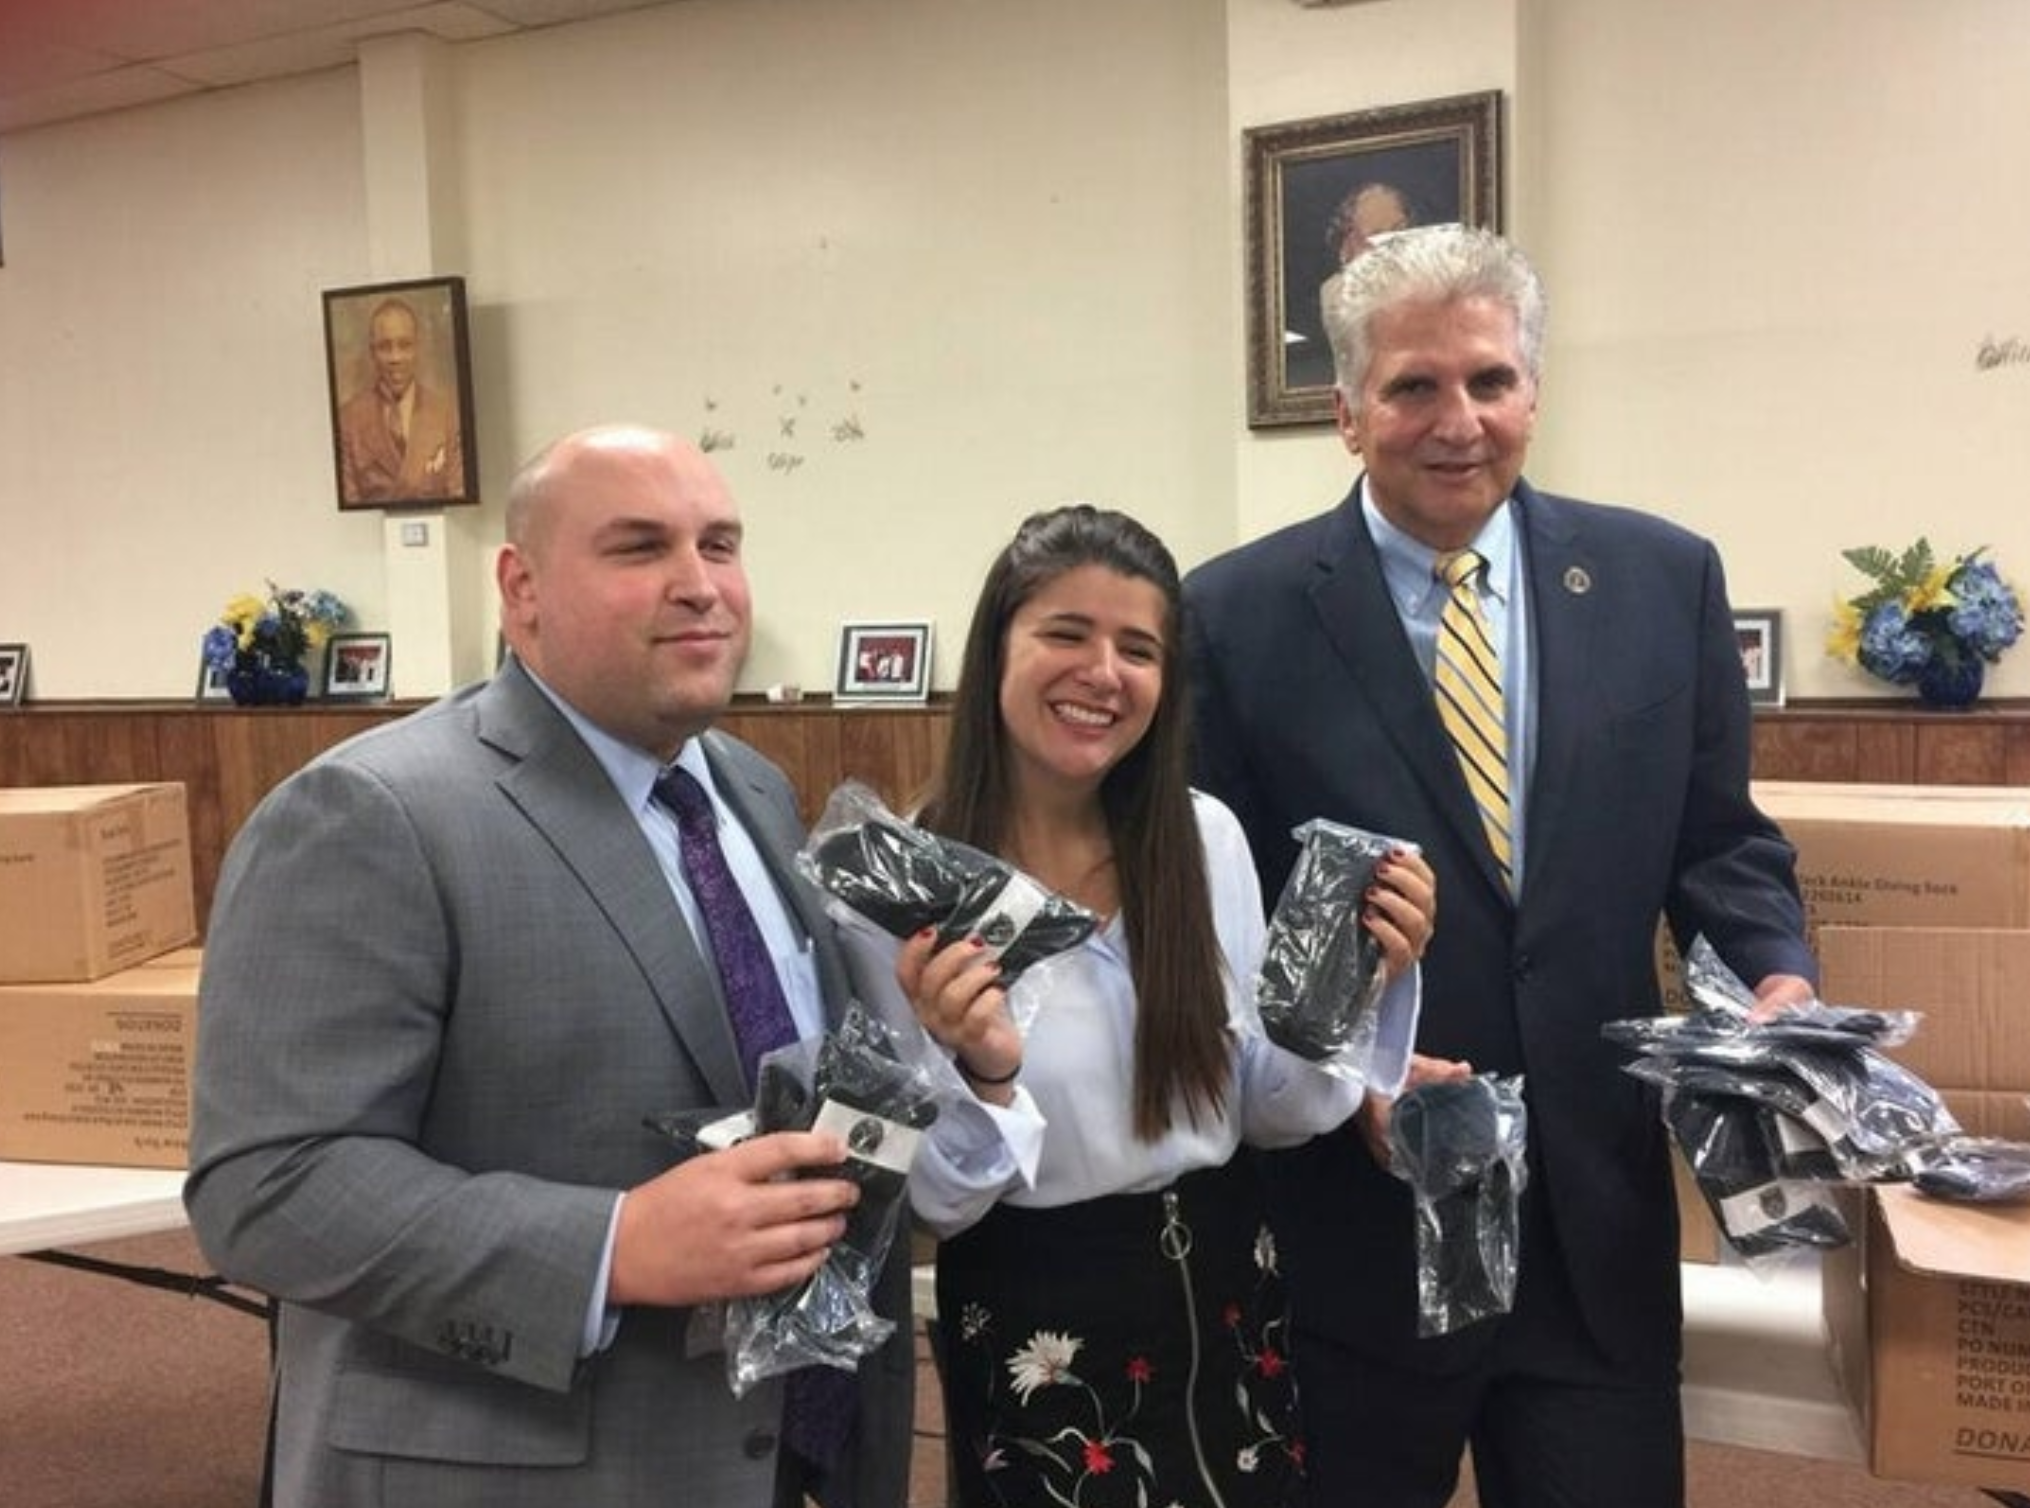 Bloomfield Is Giving Out 50000 Pairs Of Socks To Homeless People